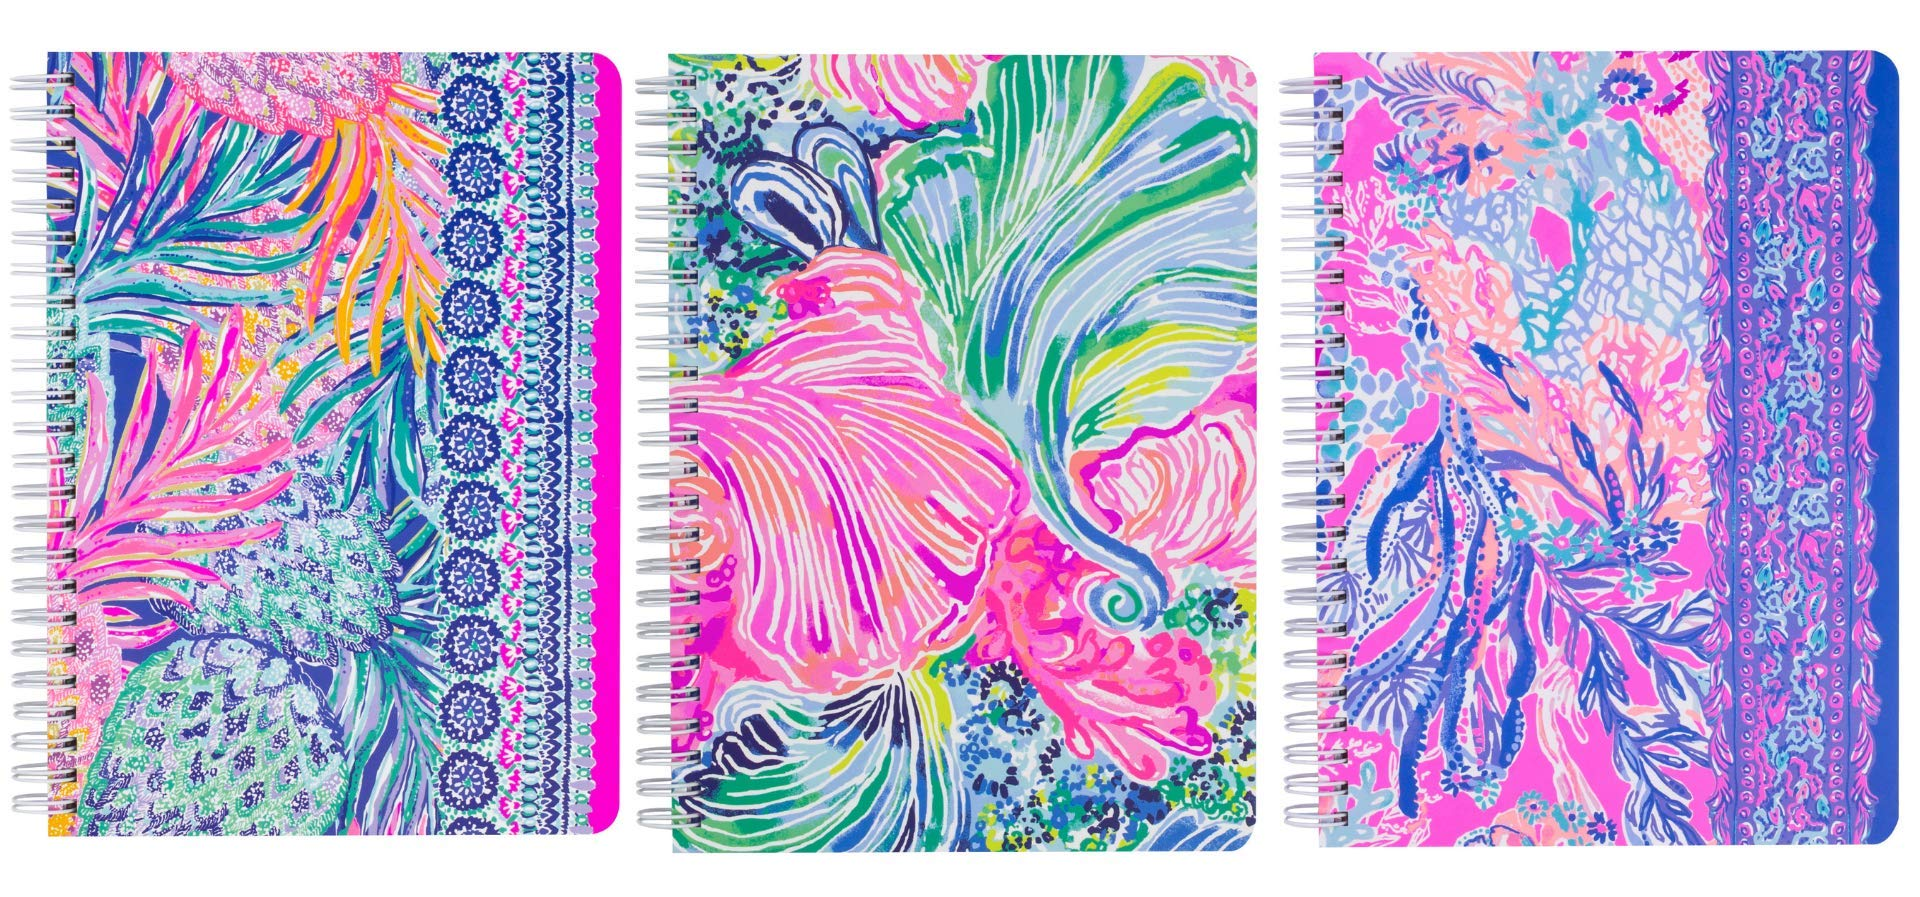 Lilly Pulitzer Set of 3 Mini Spiral Notebook Set, 8.25'' x 6.5'' with 160 pages (Aquadesiac, Gypset, Beach Please)